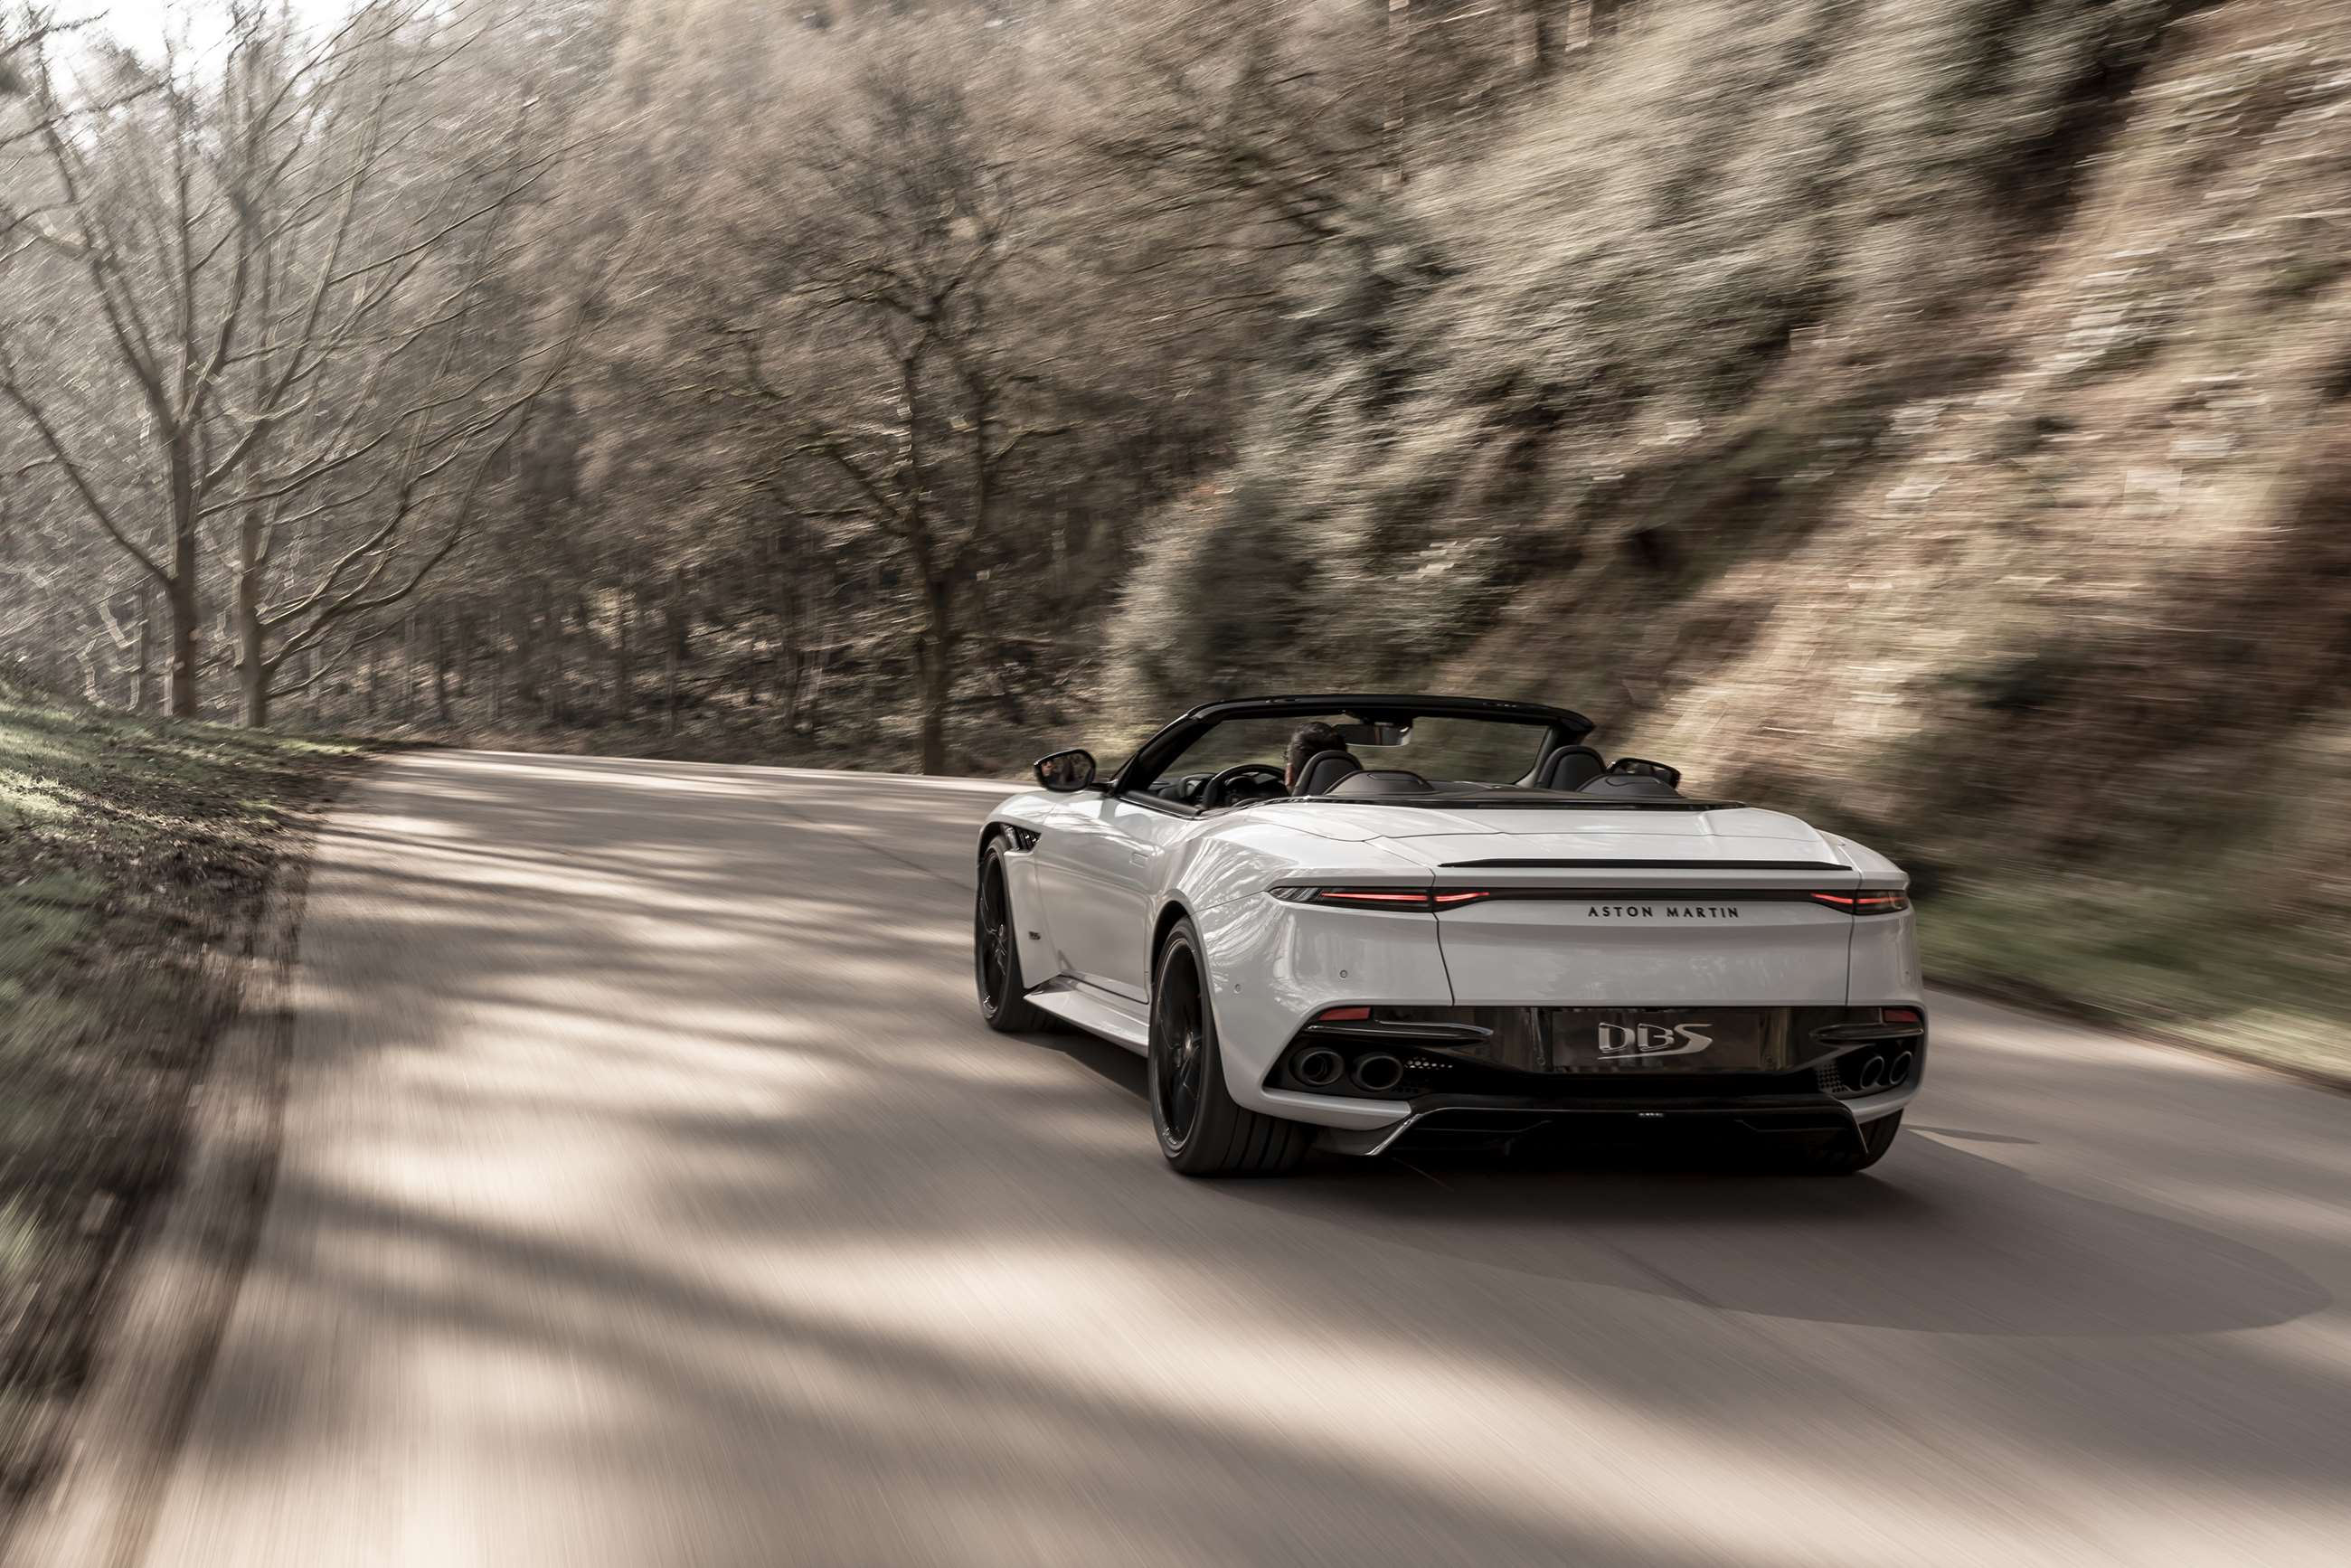 But Convertible The Dbs Superleggera Volante Is The Fastest Convertible Aston